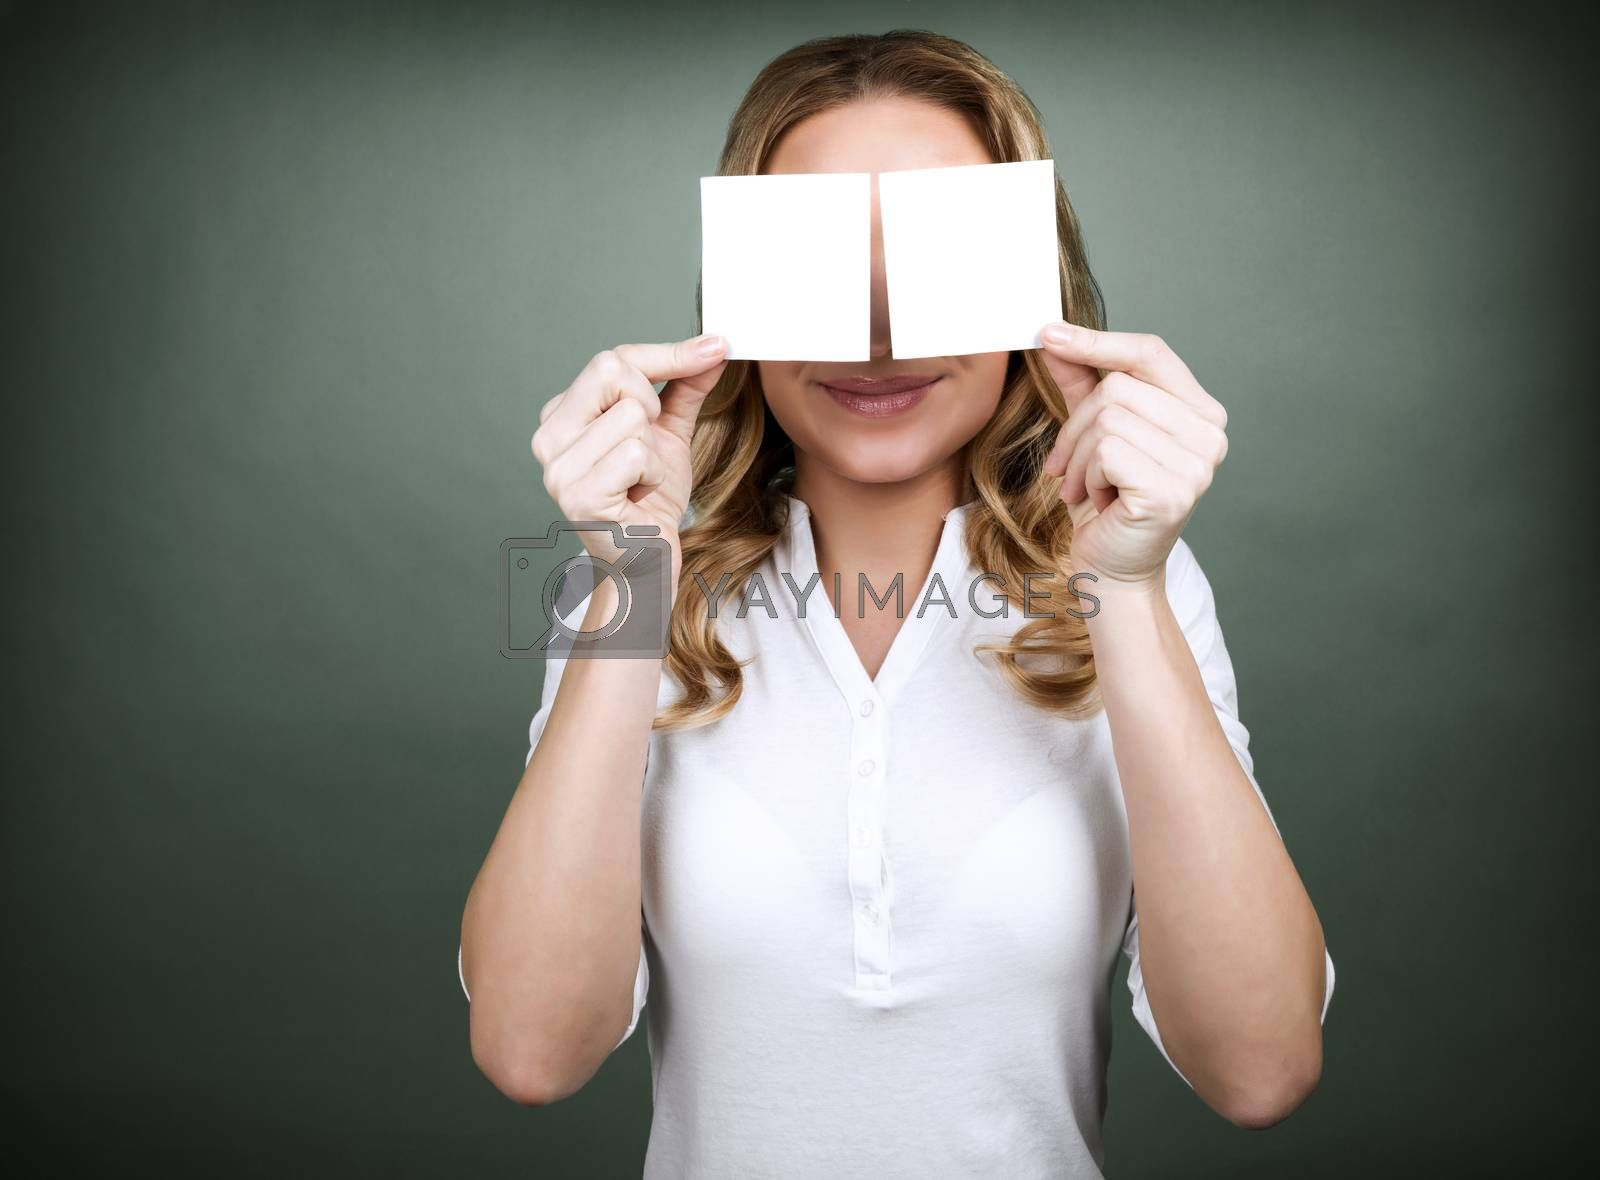 Portrait of cute blond girl closes her eyes with two blank cards isolated on grey background, copy space, place for advertisement